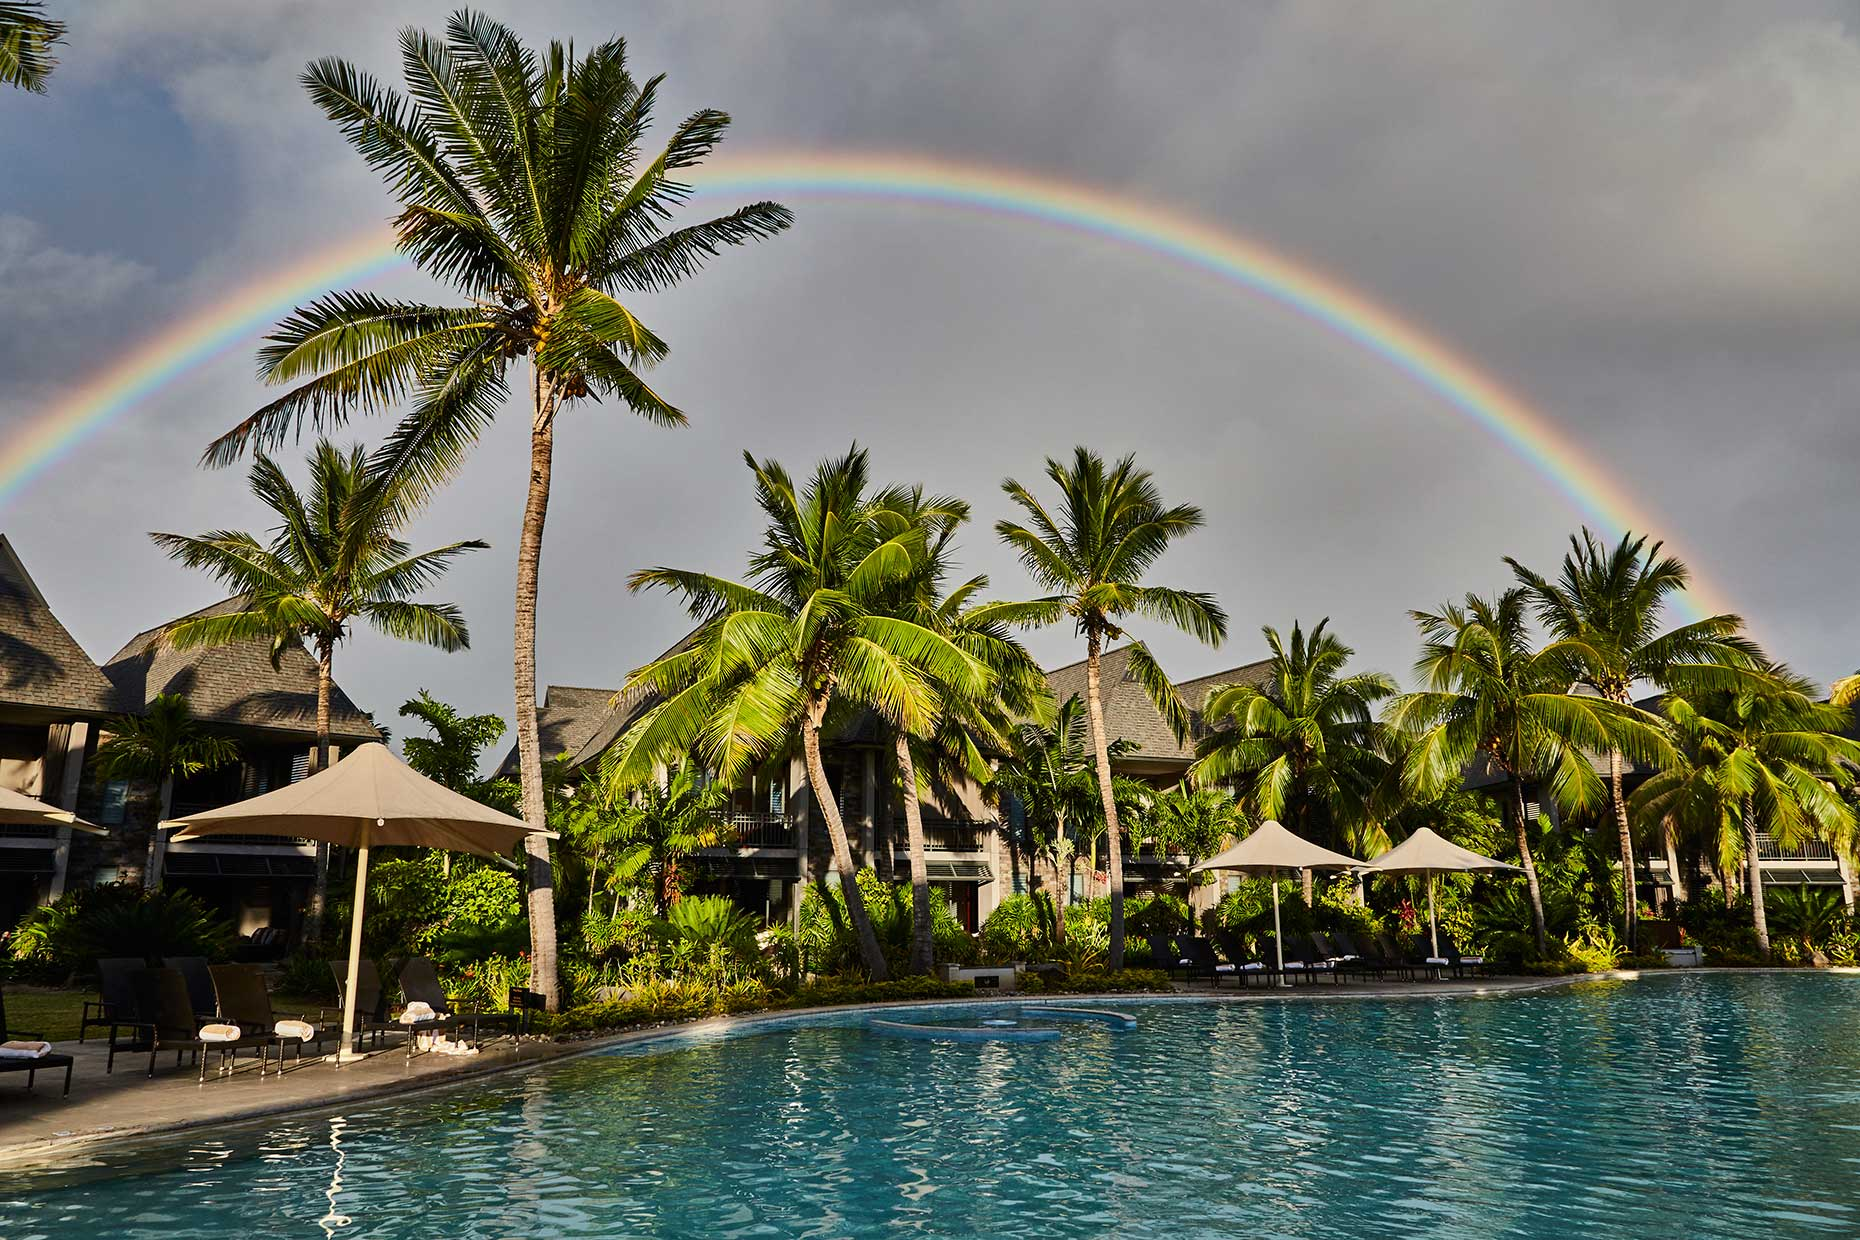 World-Venture_FIji_Day-3_Rainbow_020